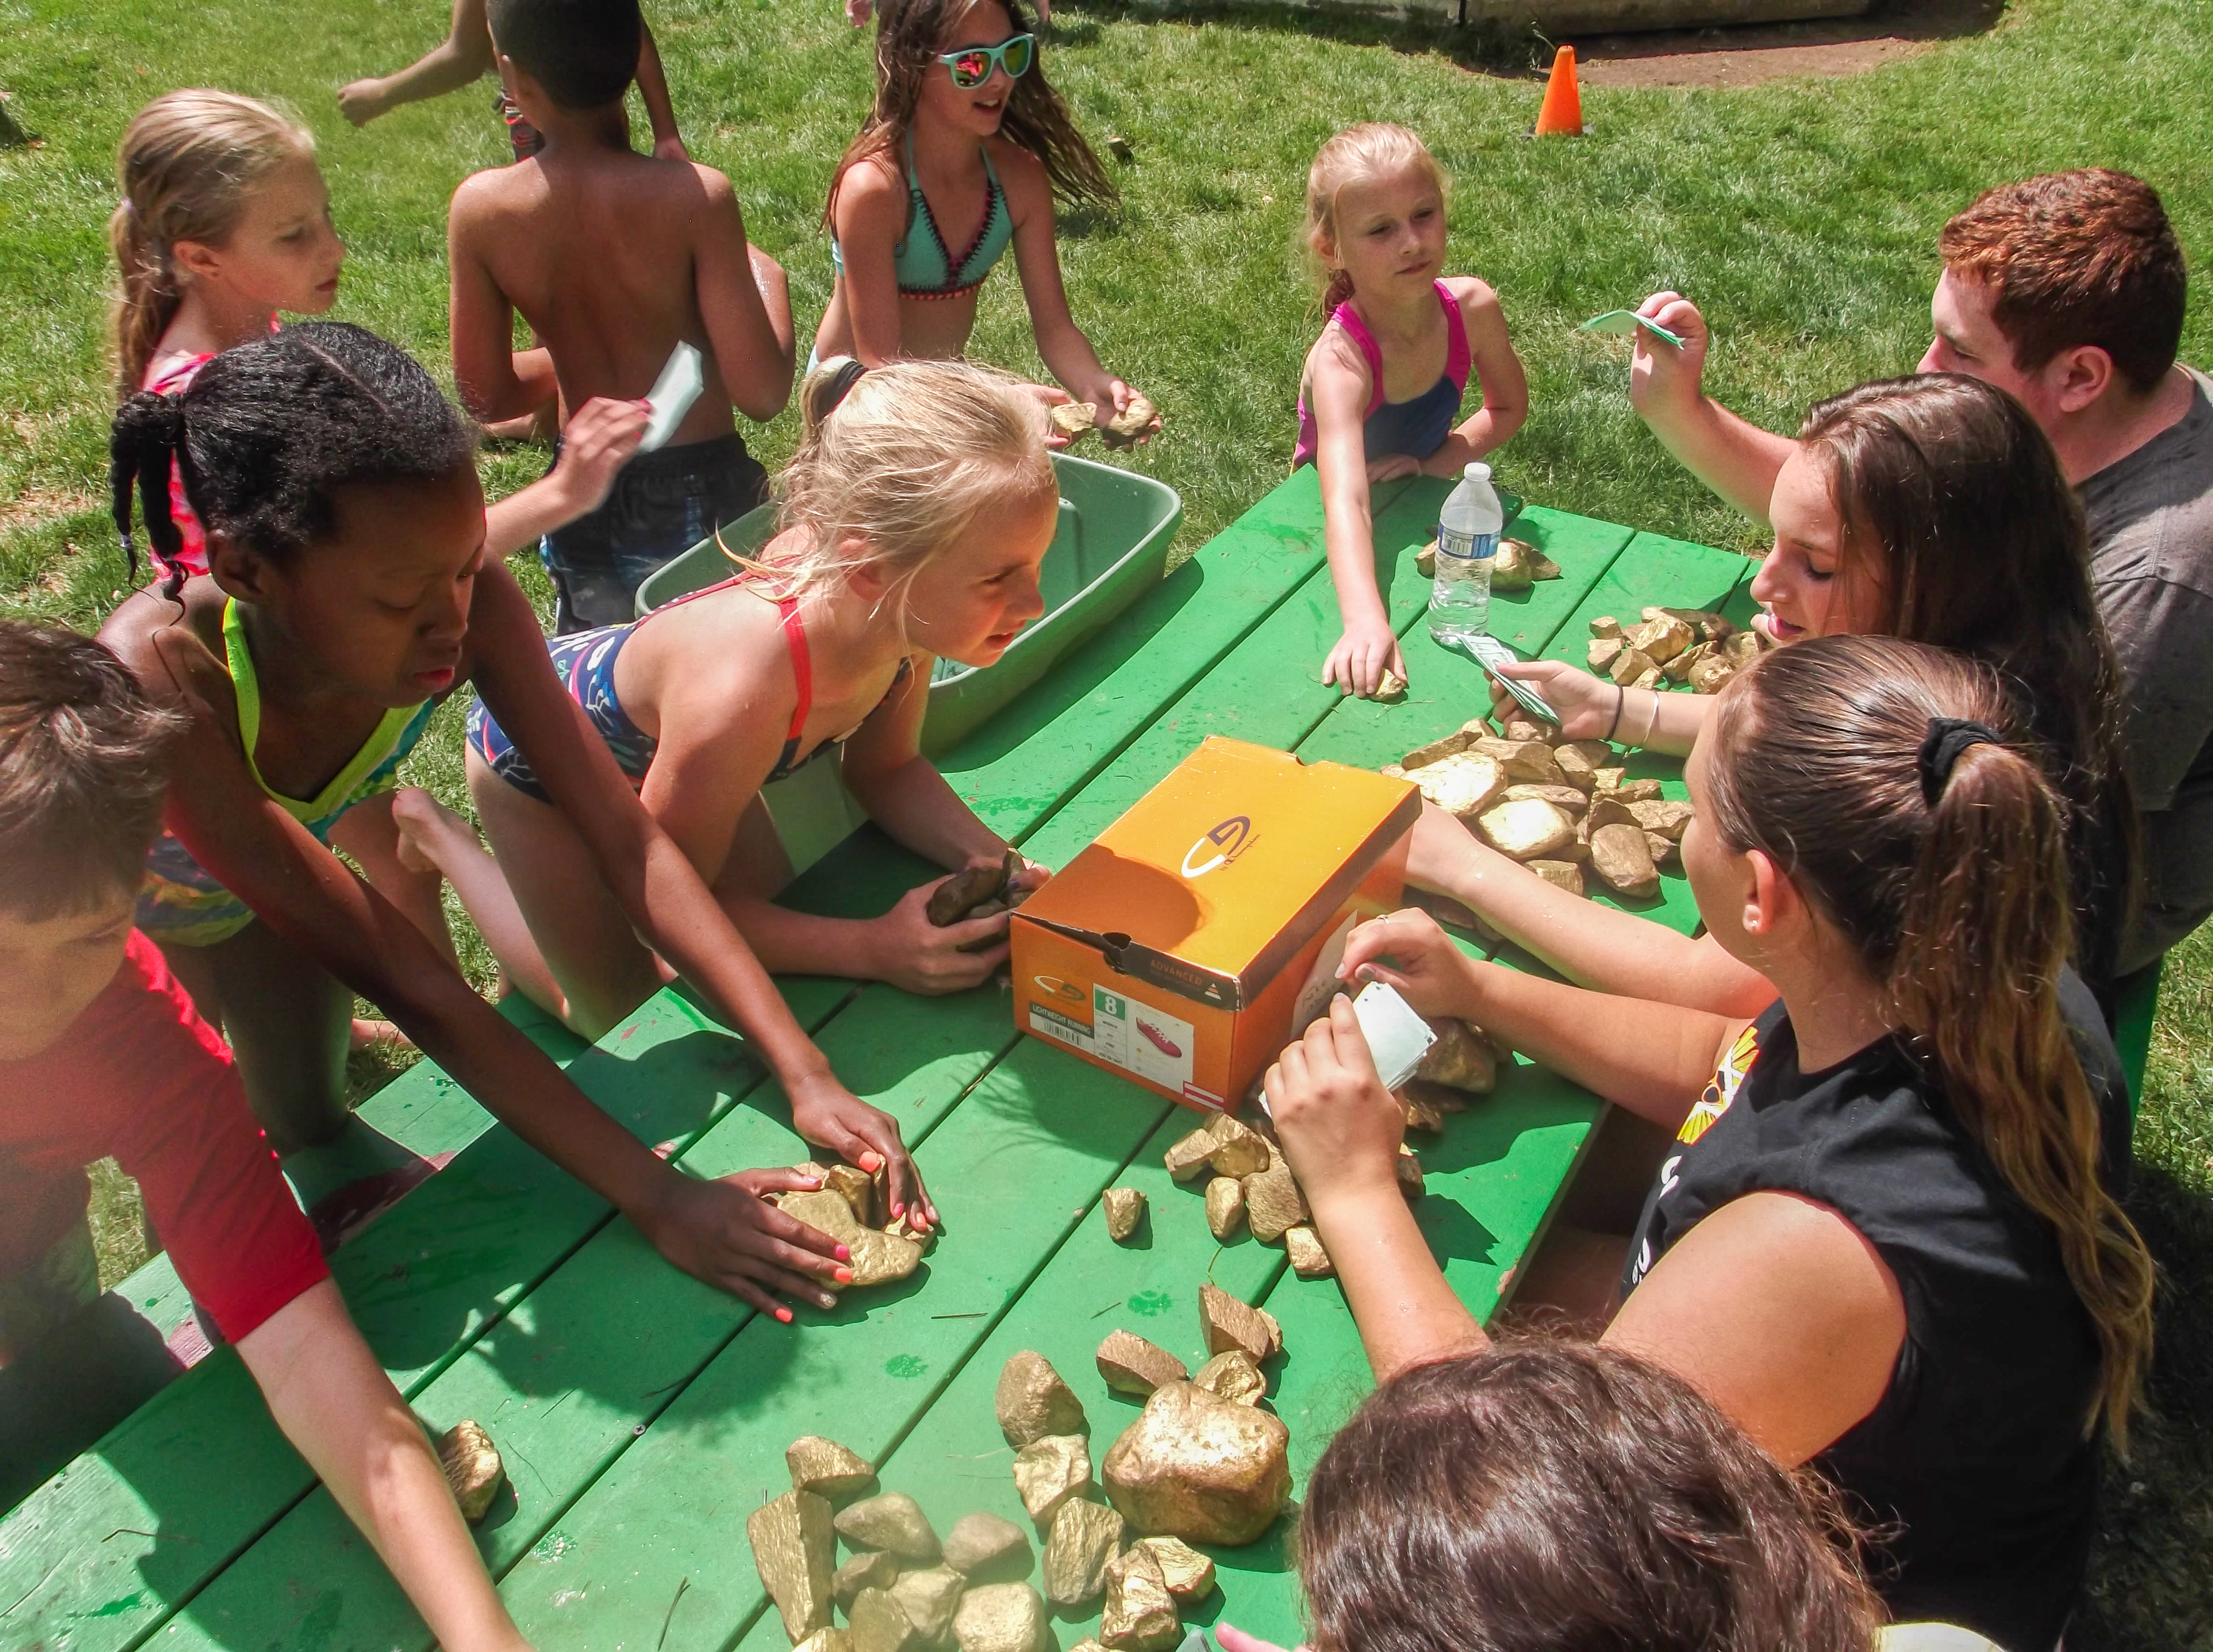 This is a photo of children at the JCC Summer Camp with gold rocks on a picnic table